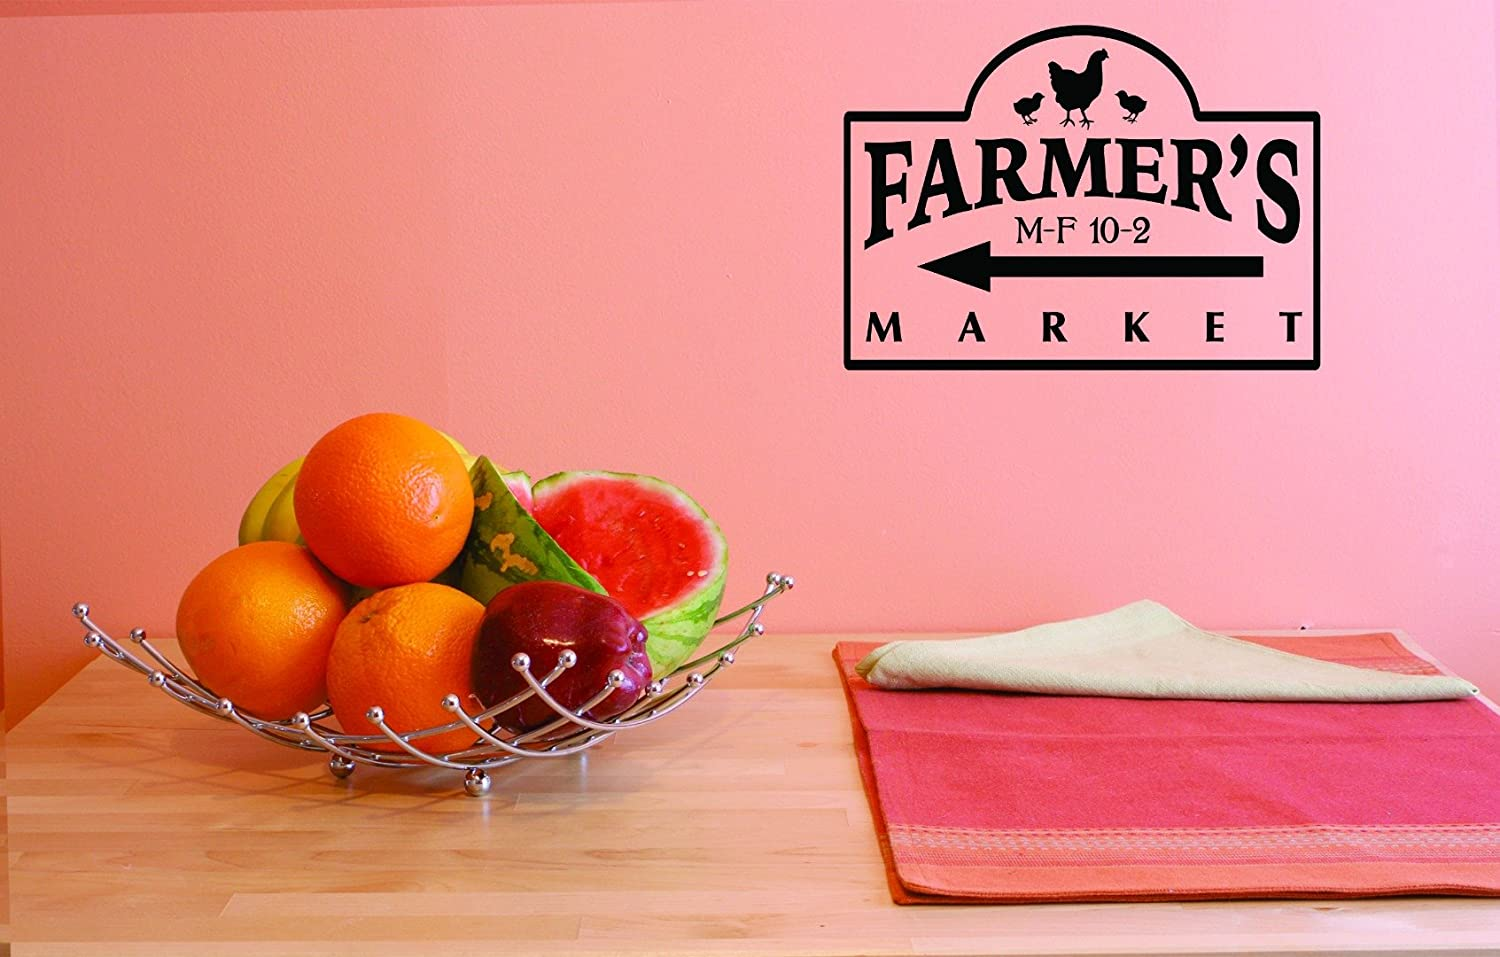 Design with Vinyl JER 1762 3 Hot New Decals Farmers Market Wall Art Size 20 Inches x 40 Inches Color Black 20 x 40